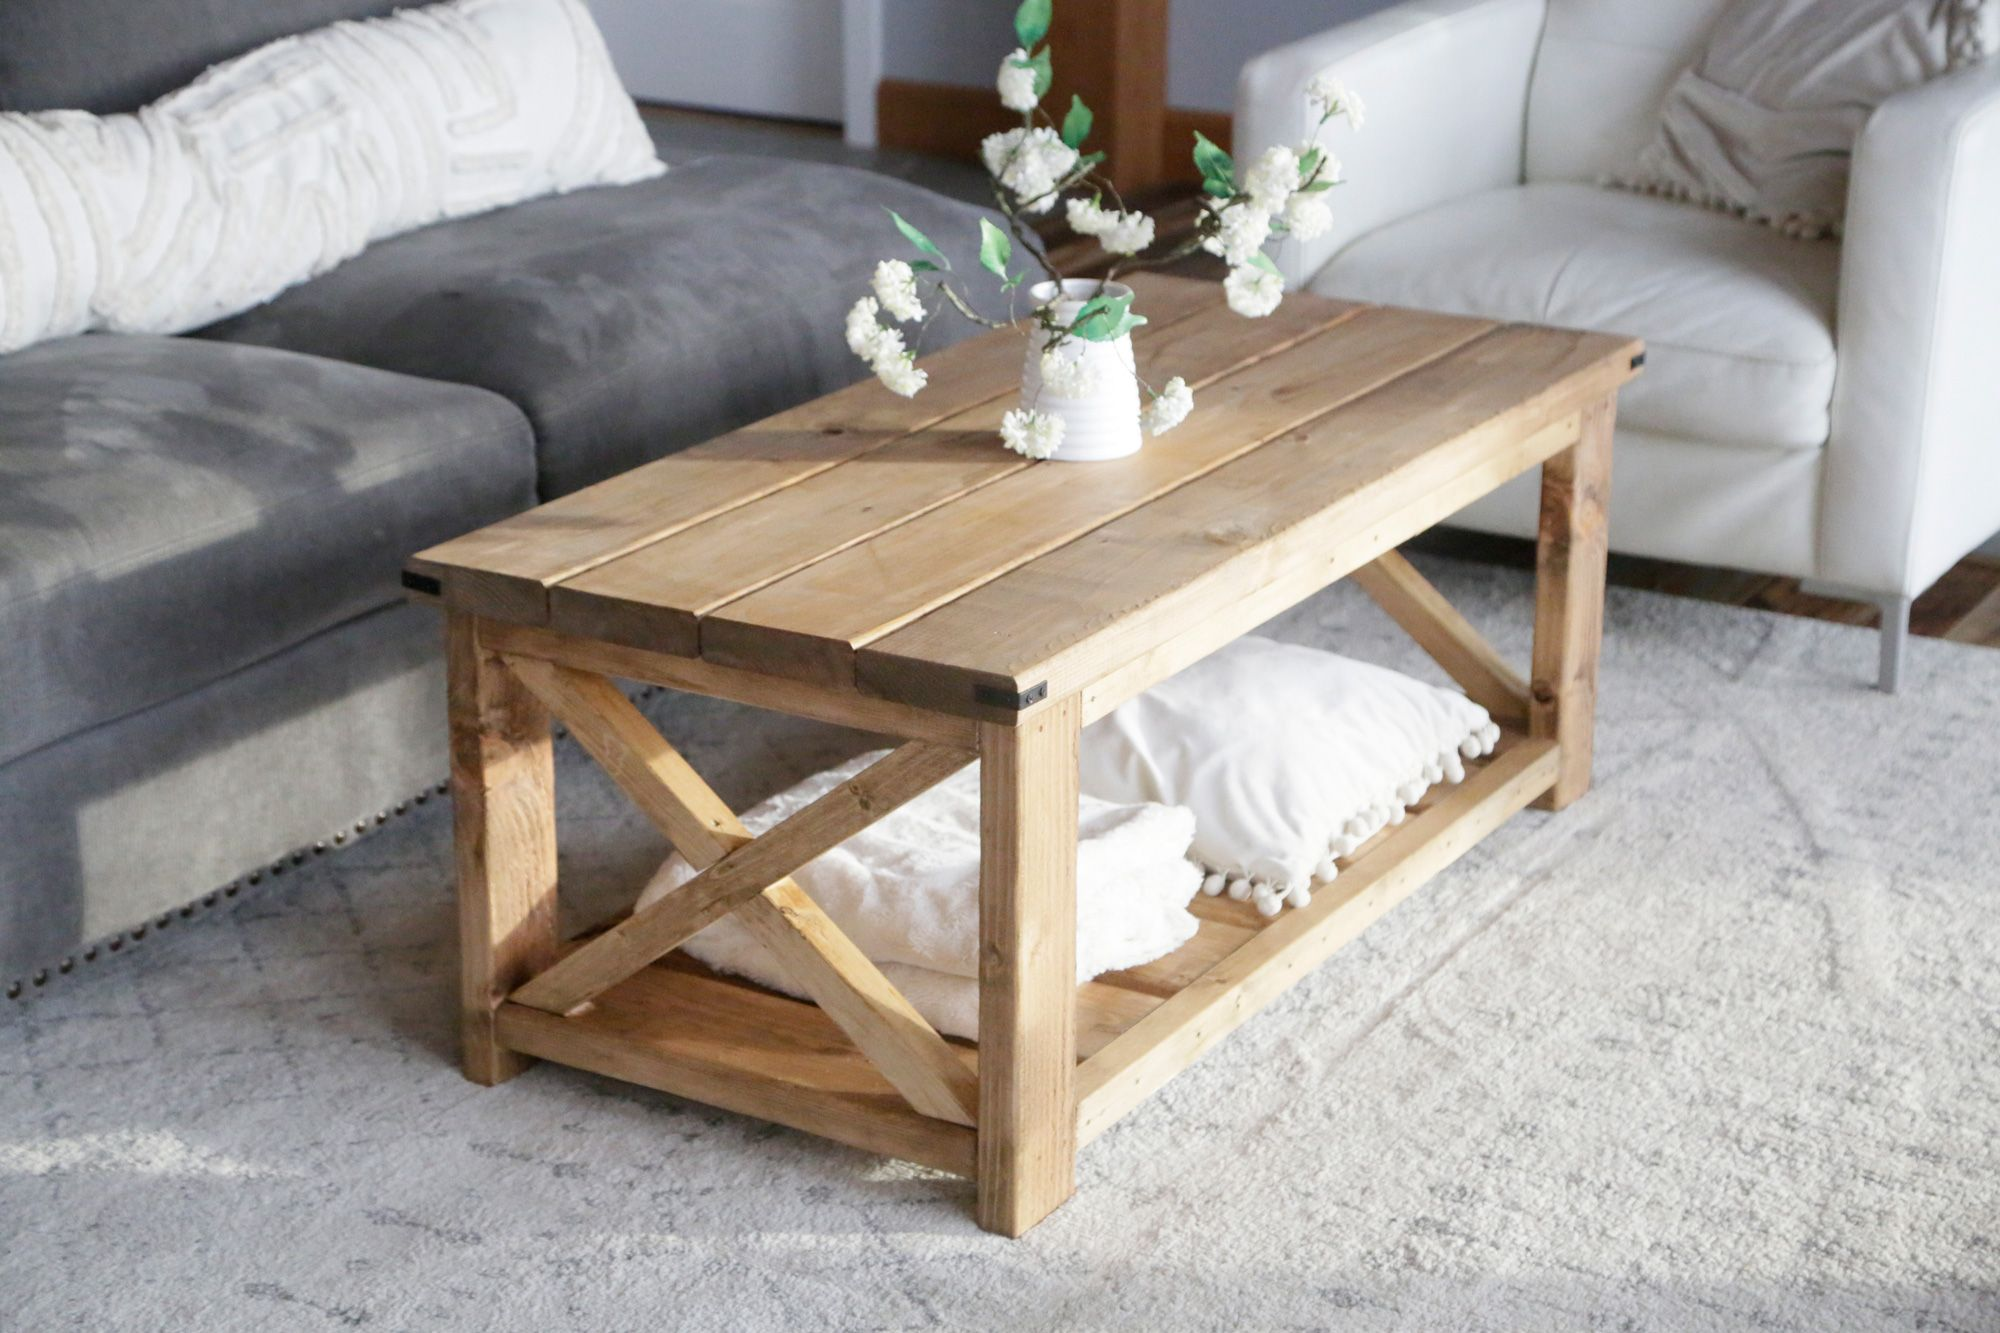 Farmhouse Coffee Table Beginner Under 40 With Images Coffee